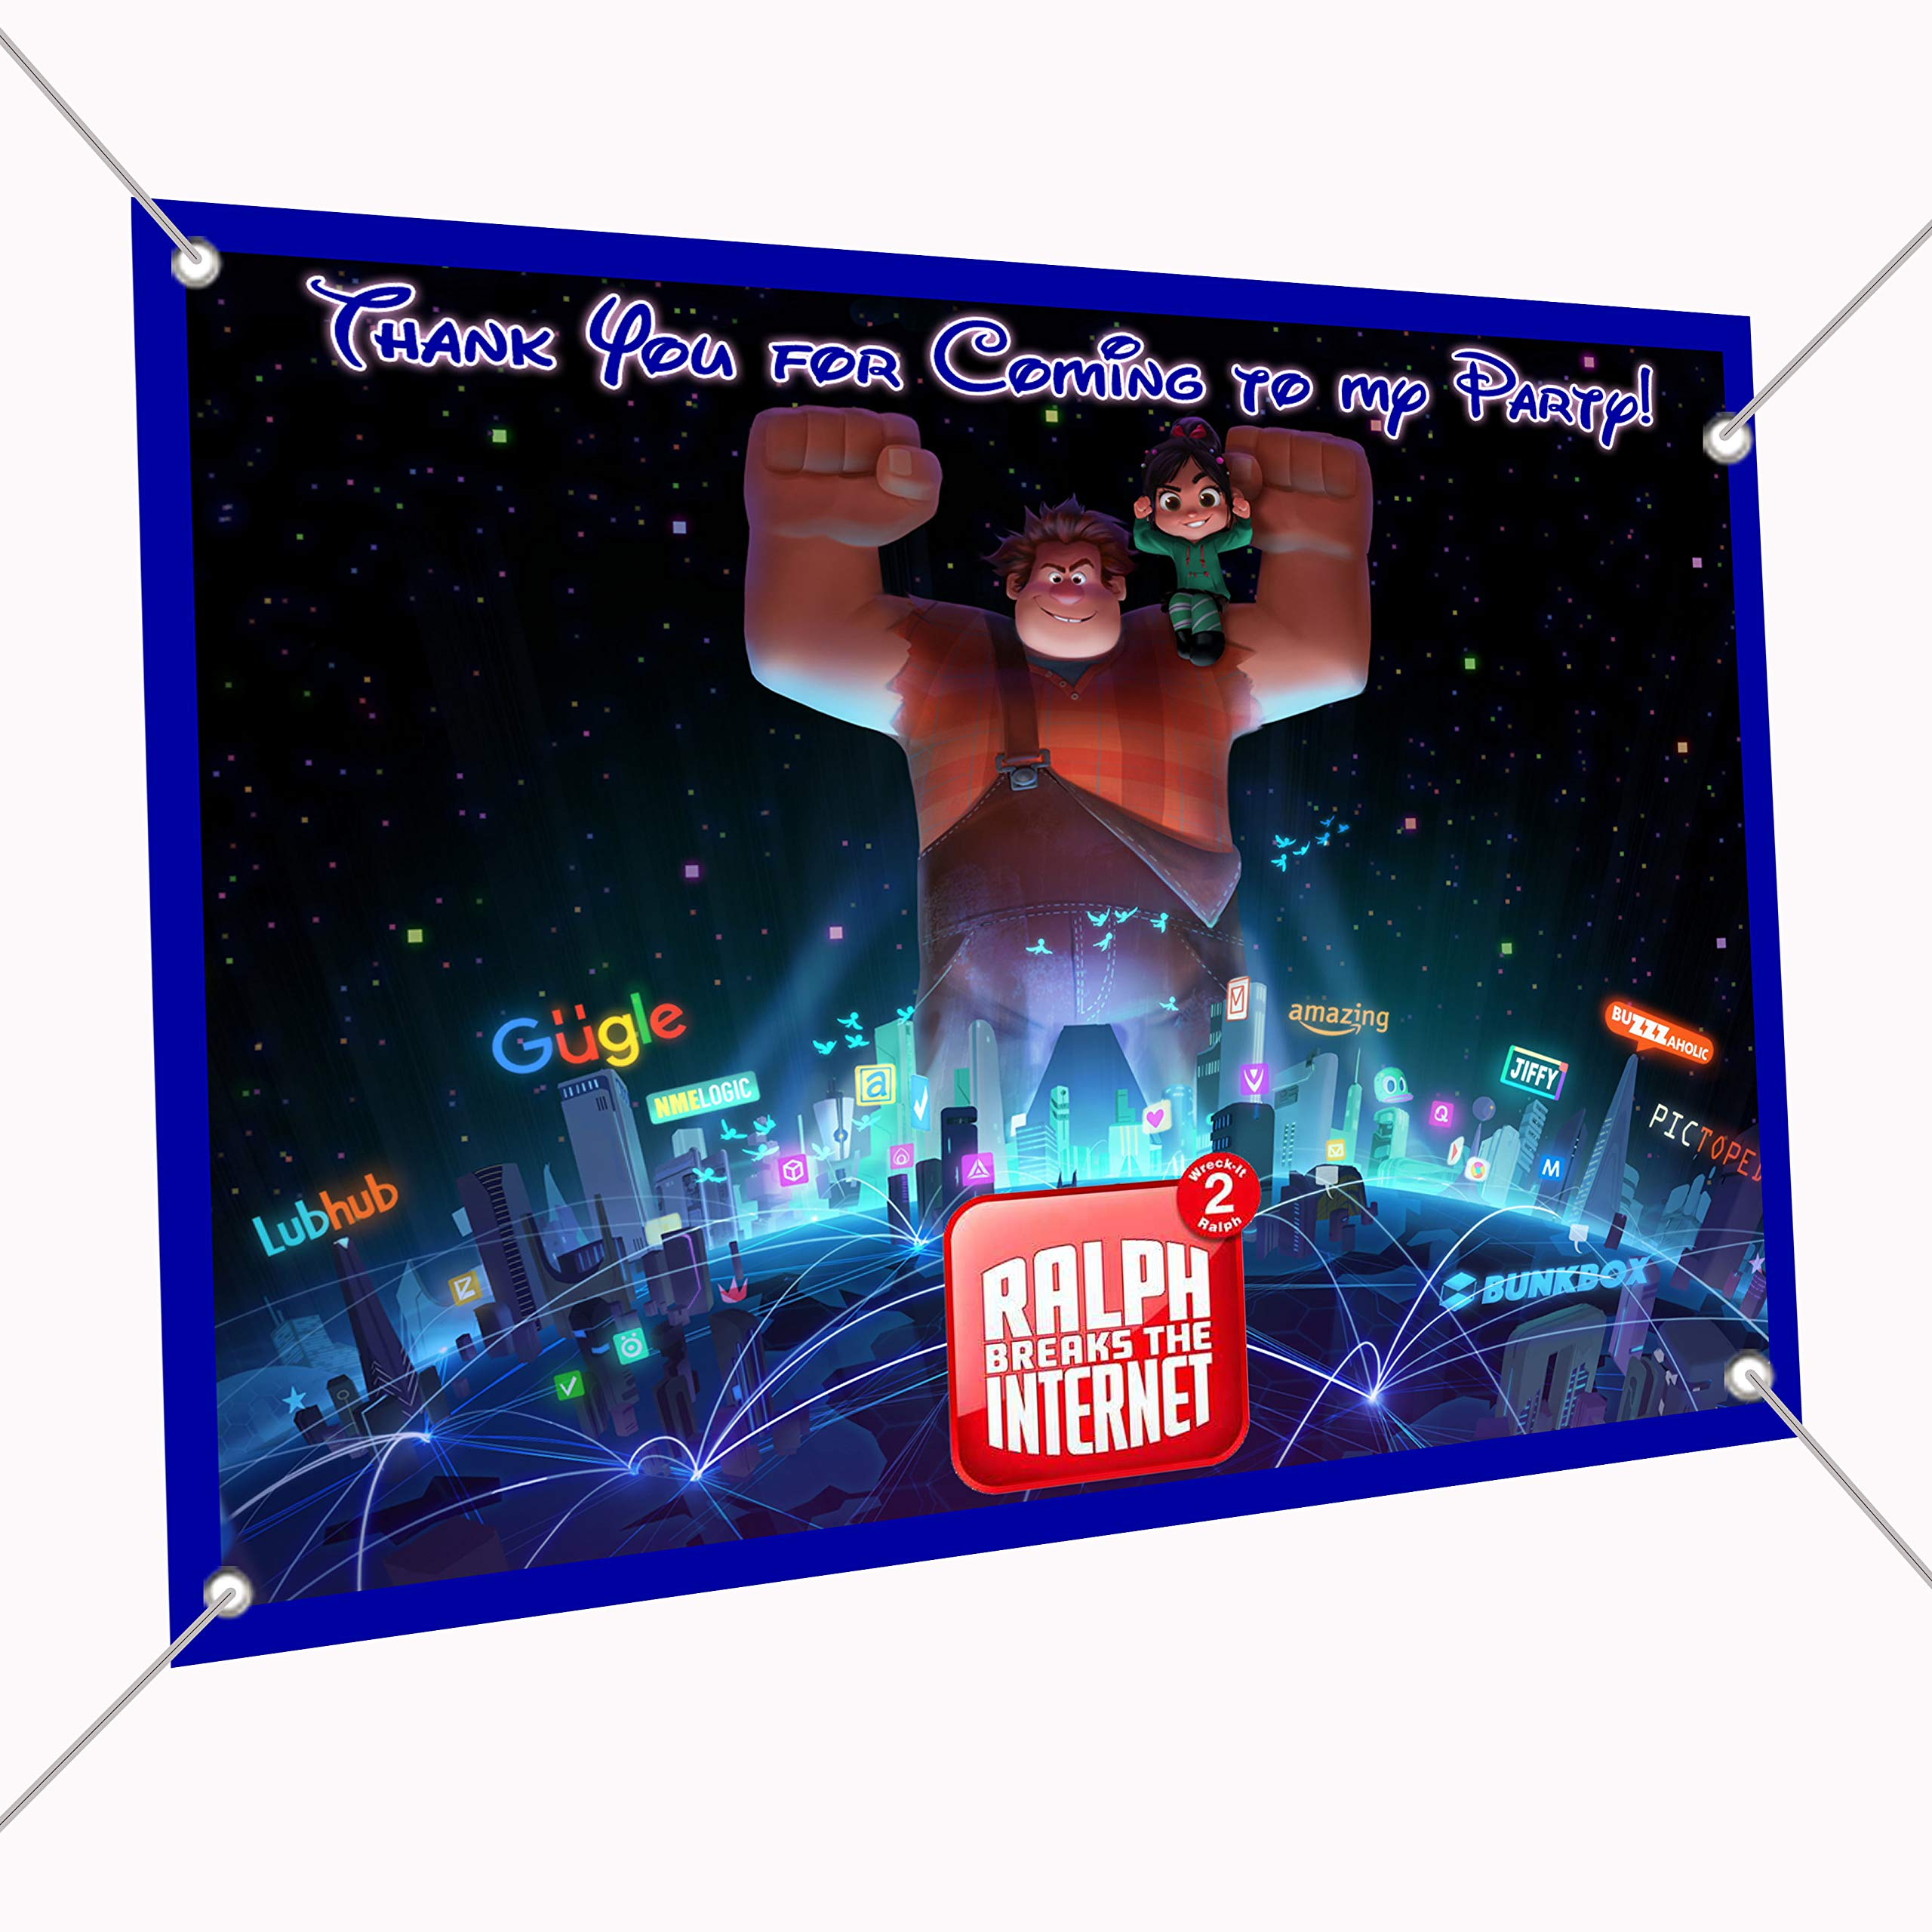 Wreck It Ralph 2 Banner Group Photo Large Vinyl Indoor or Outdoor Banner Sign Poster Backdrop, Party Favor Decoration, 30'' x 24'', 2.5' x 2' Wreck-It, Vanellope, Breaks The Internet